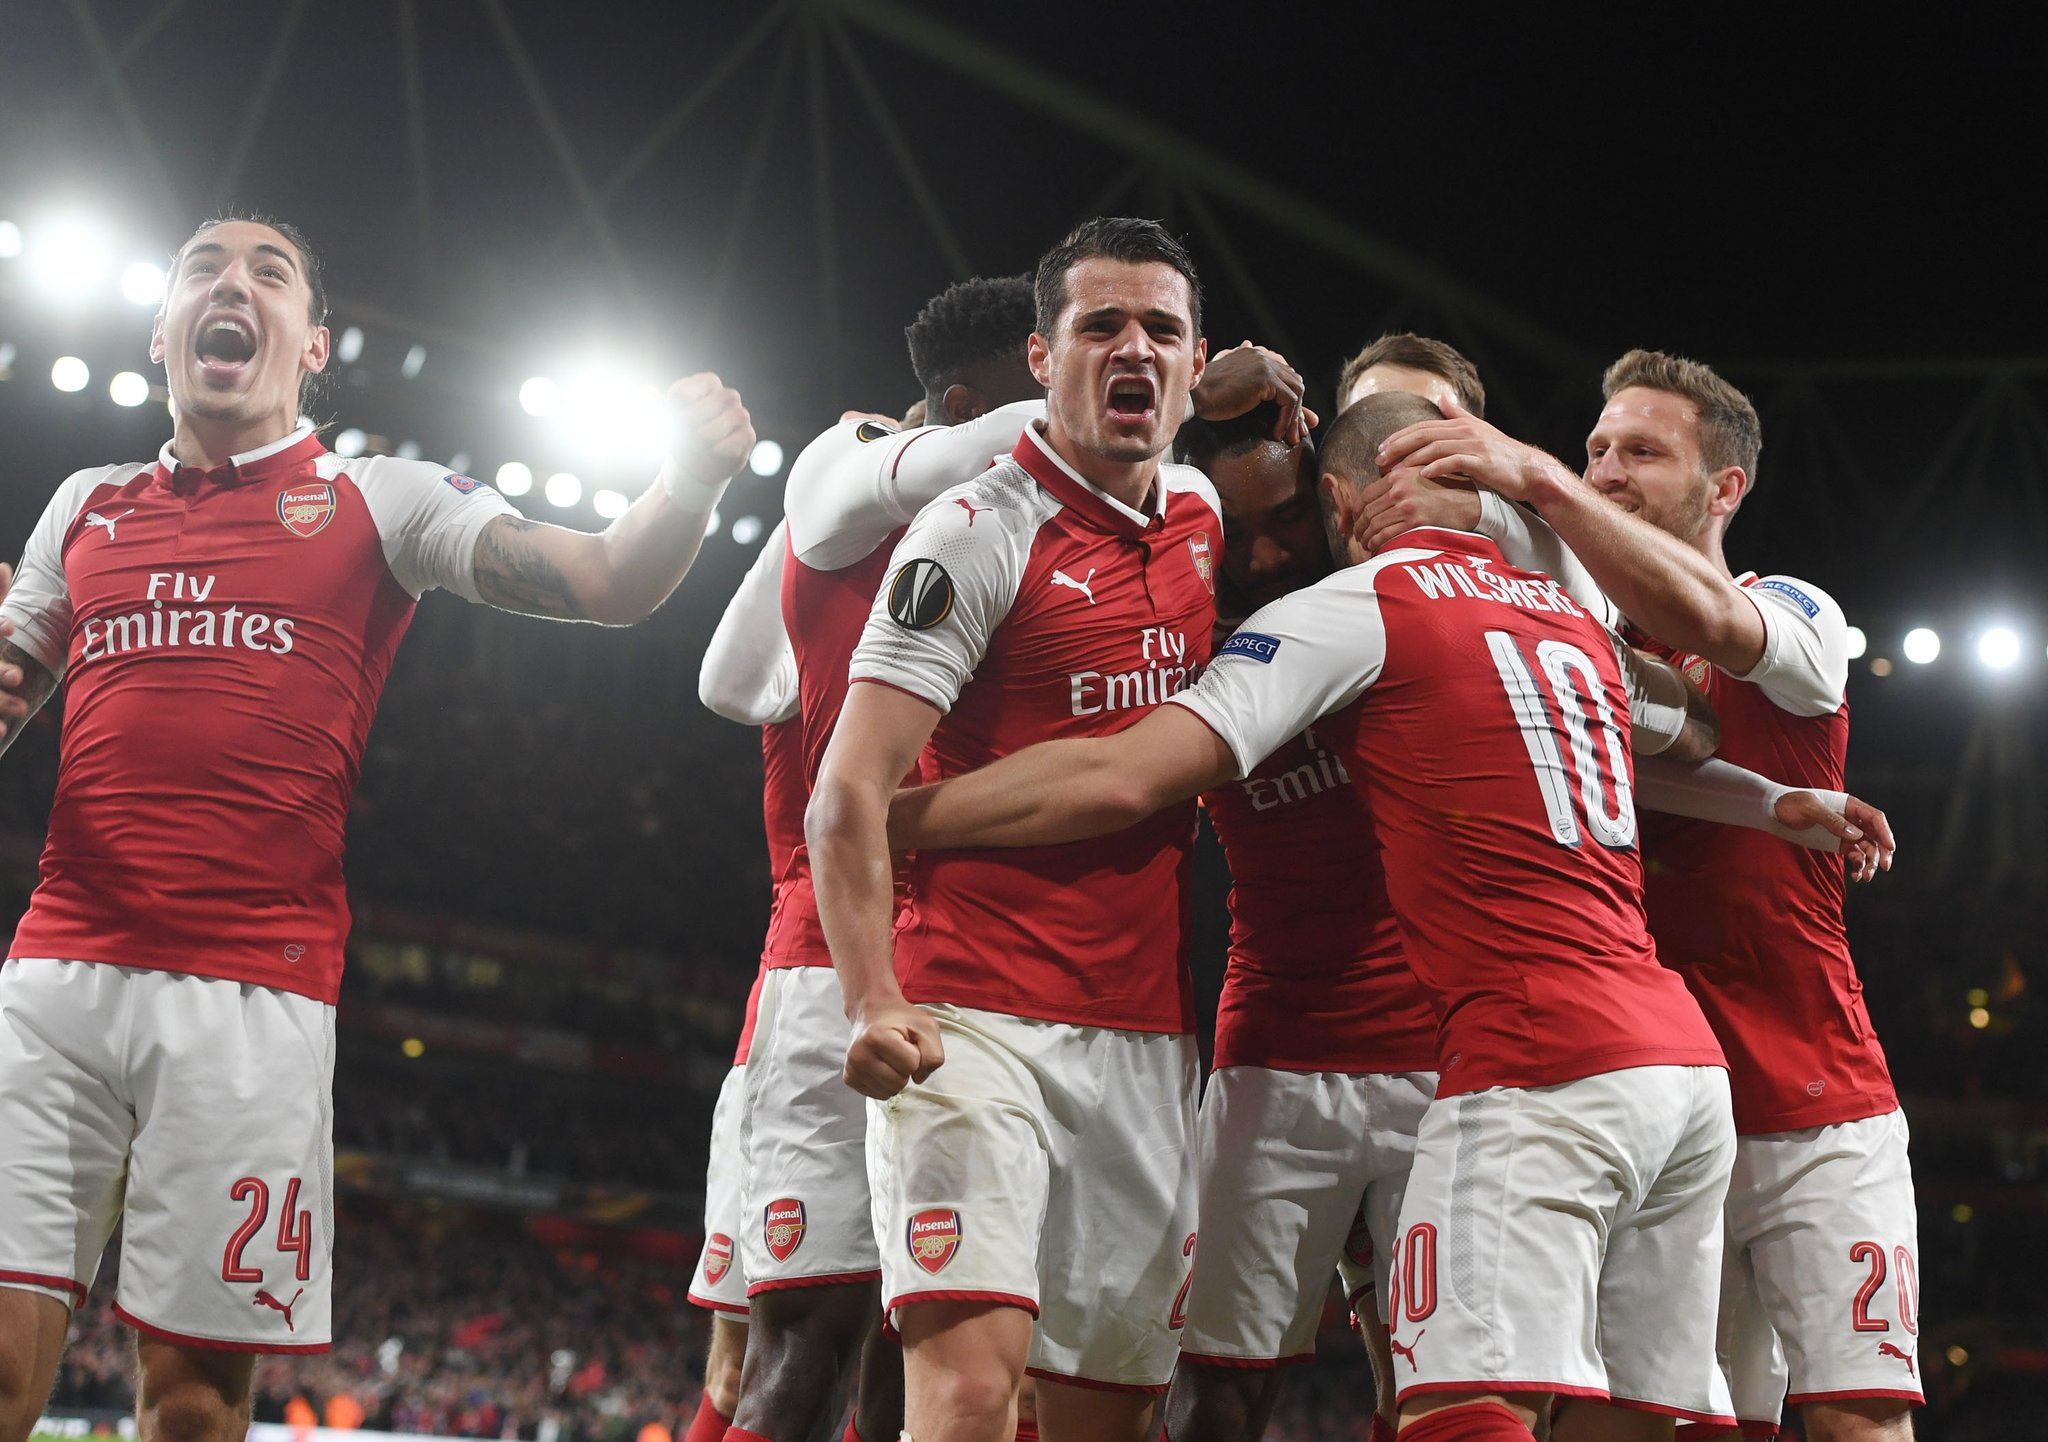 ARSENAL SQUAD CELEBRATING